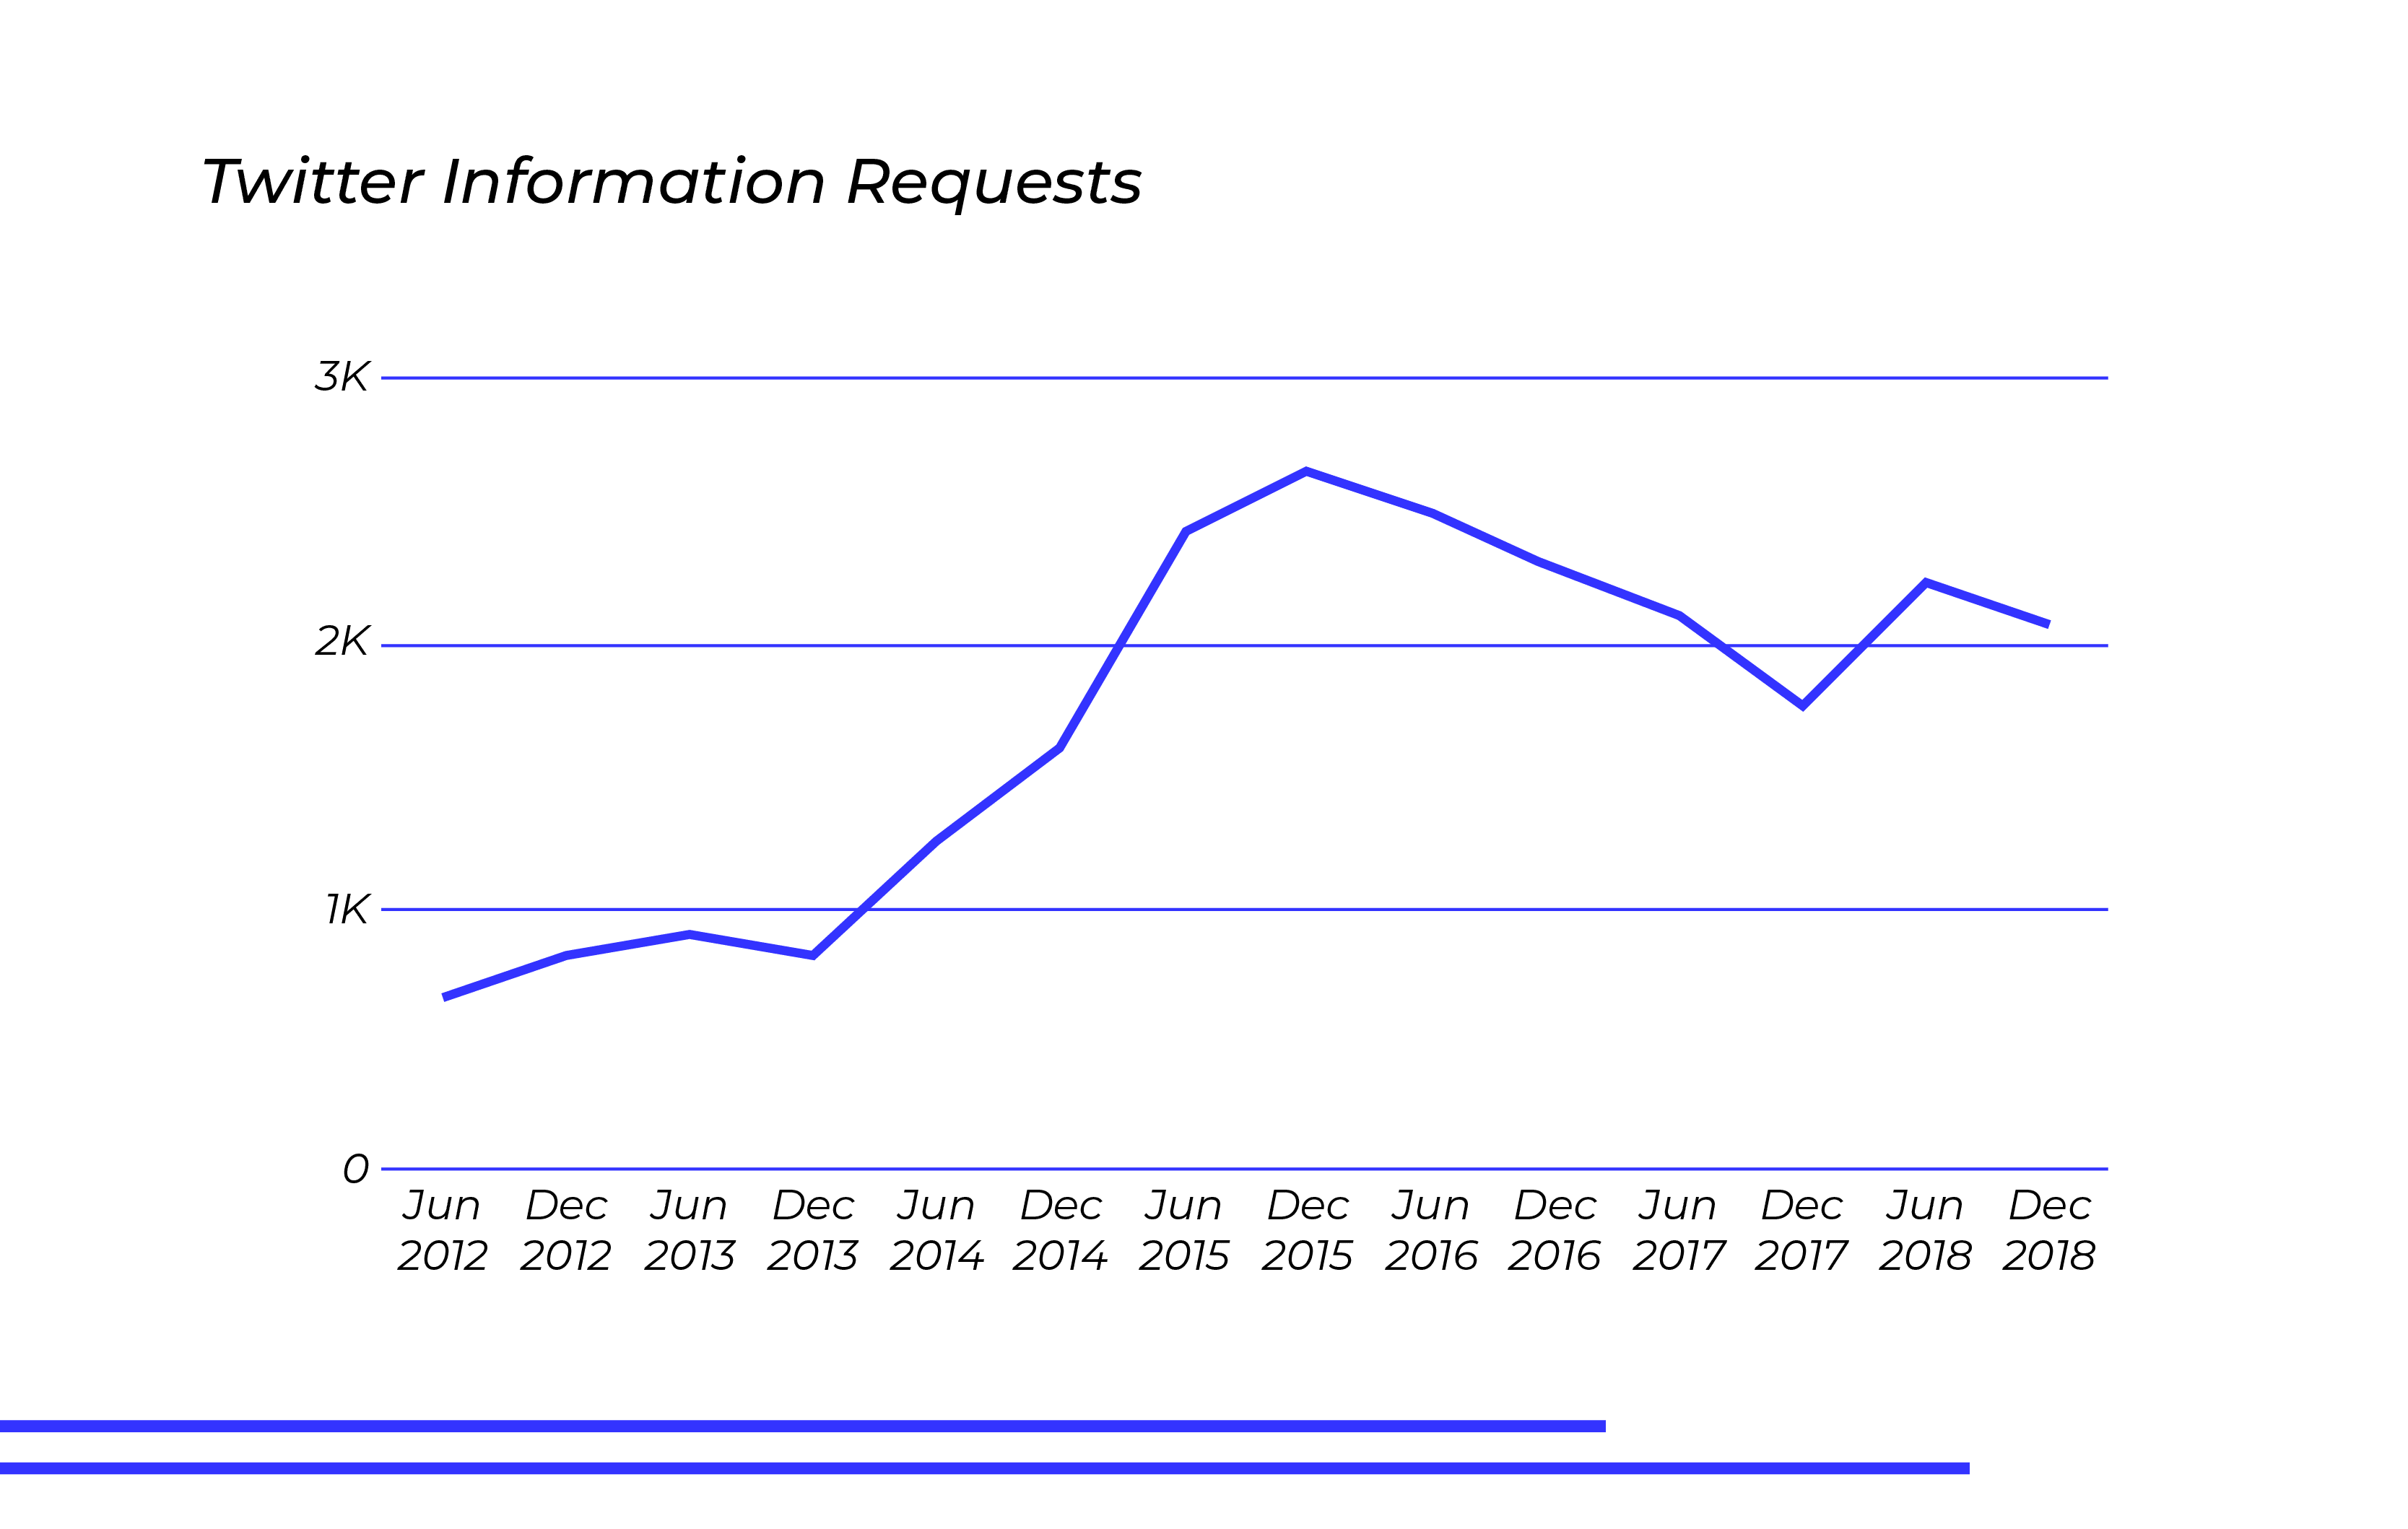 twitter-information-requests-over-time